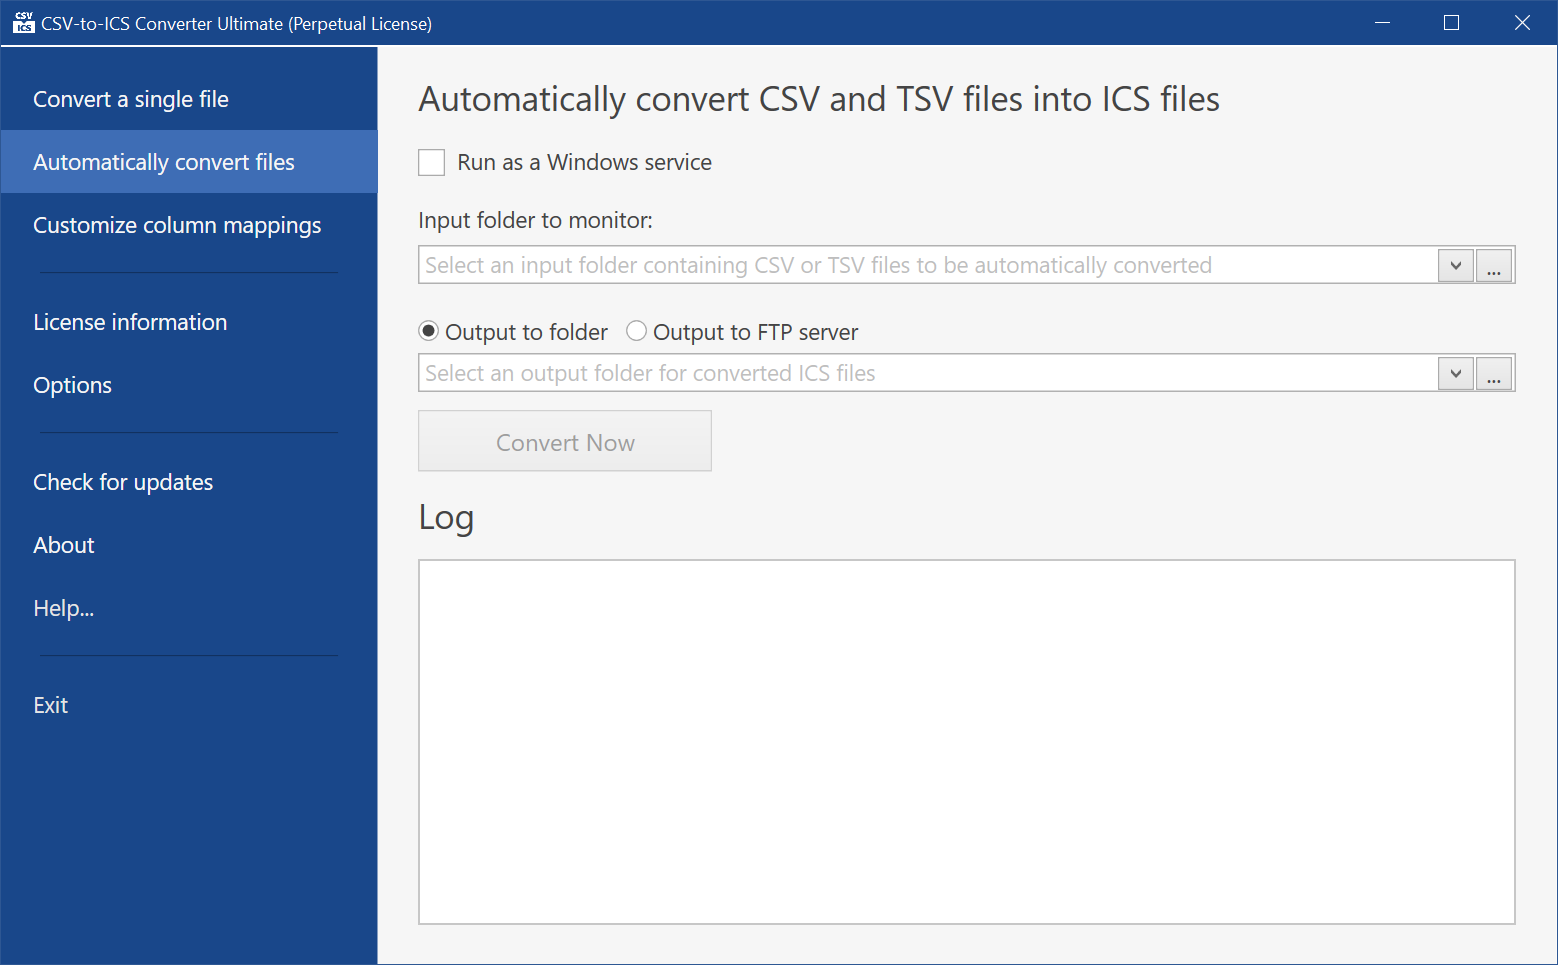 The 'Automatically convert files' tab is where an input folder containing CSV files can be specified. The files will be automatically converted into ICS files and stored in the specified folder or uploaded to your website.